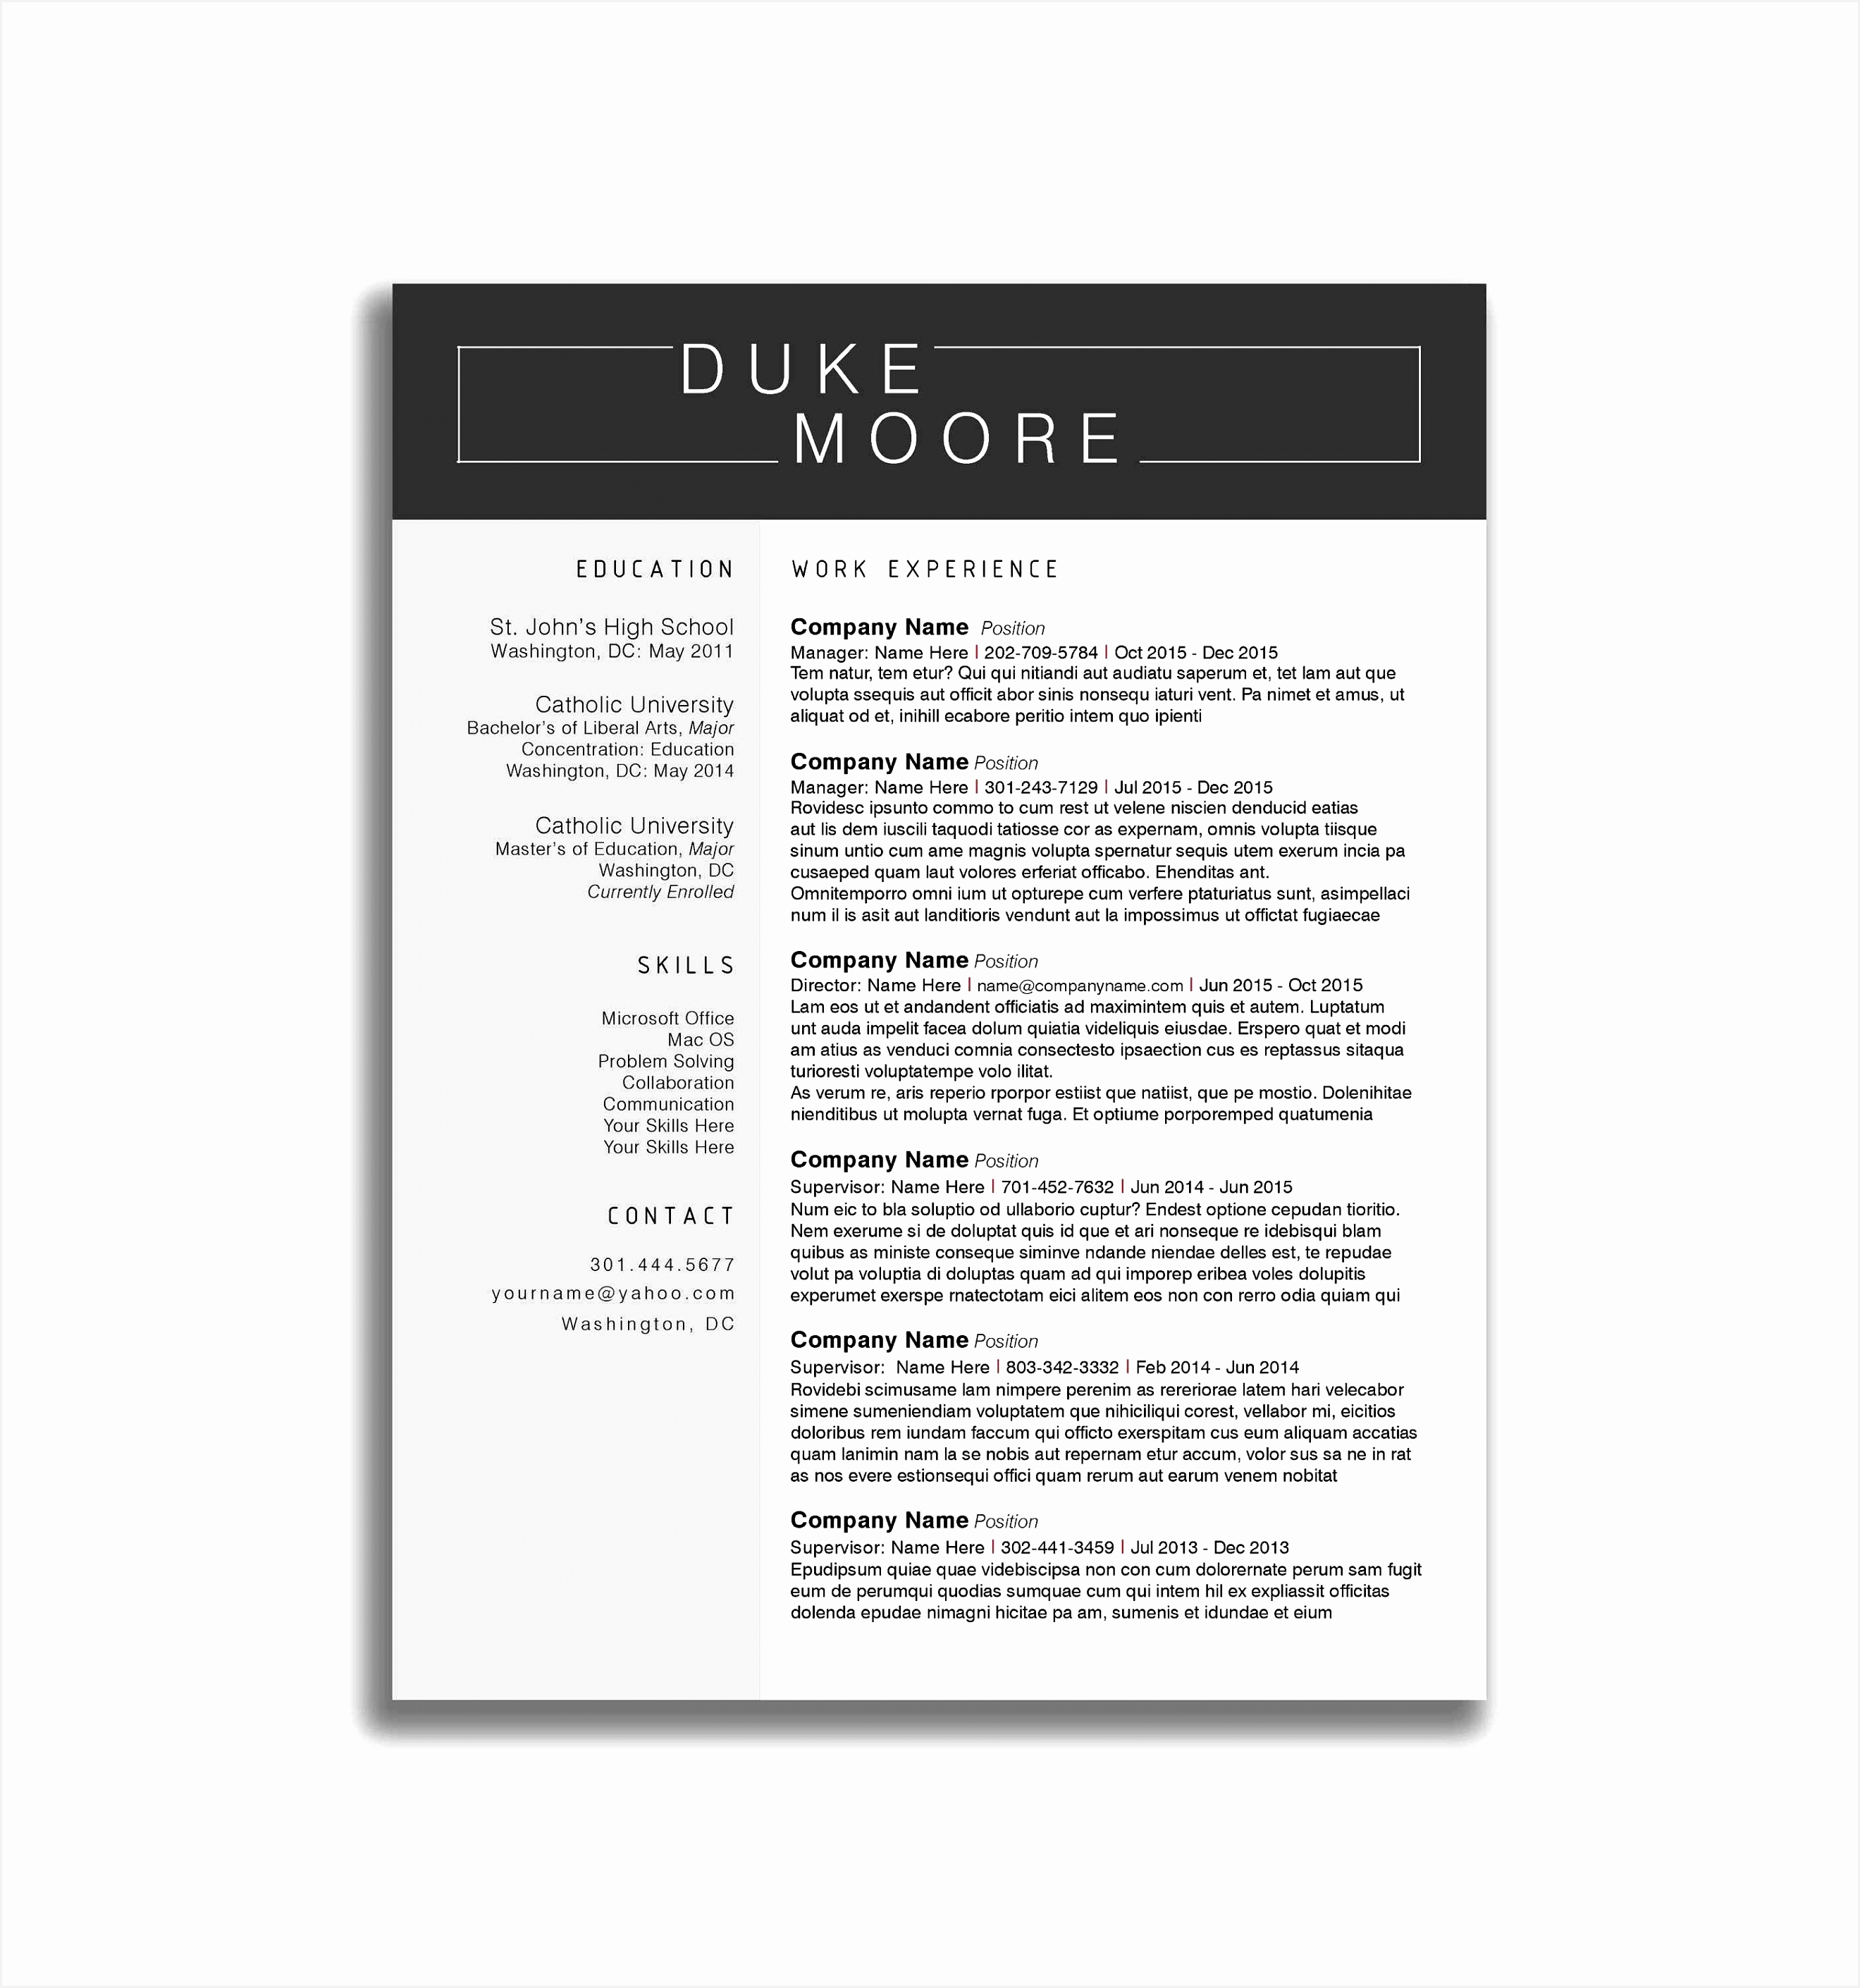 Free Online Resume Templates Word Jexfs Lovely 20 Elegant Line Resume Builder Of 10 Free Online Resume Templates Word